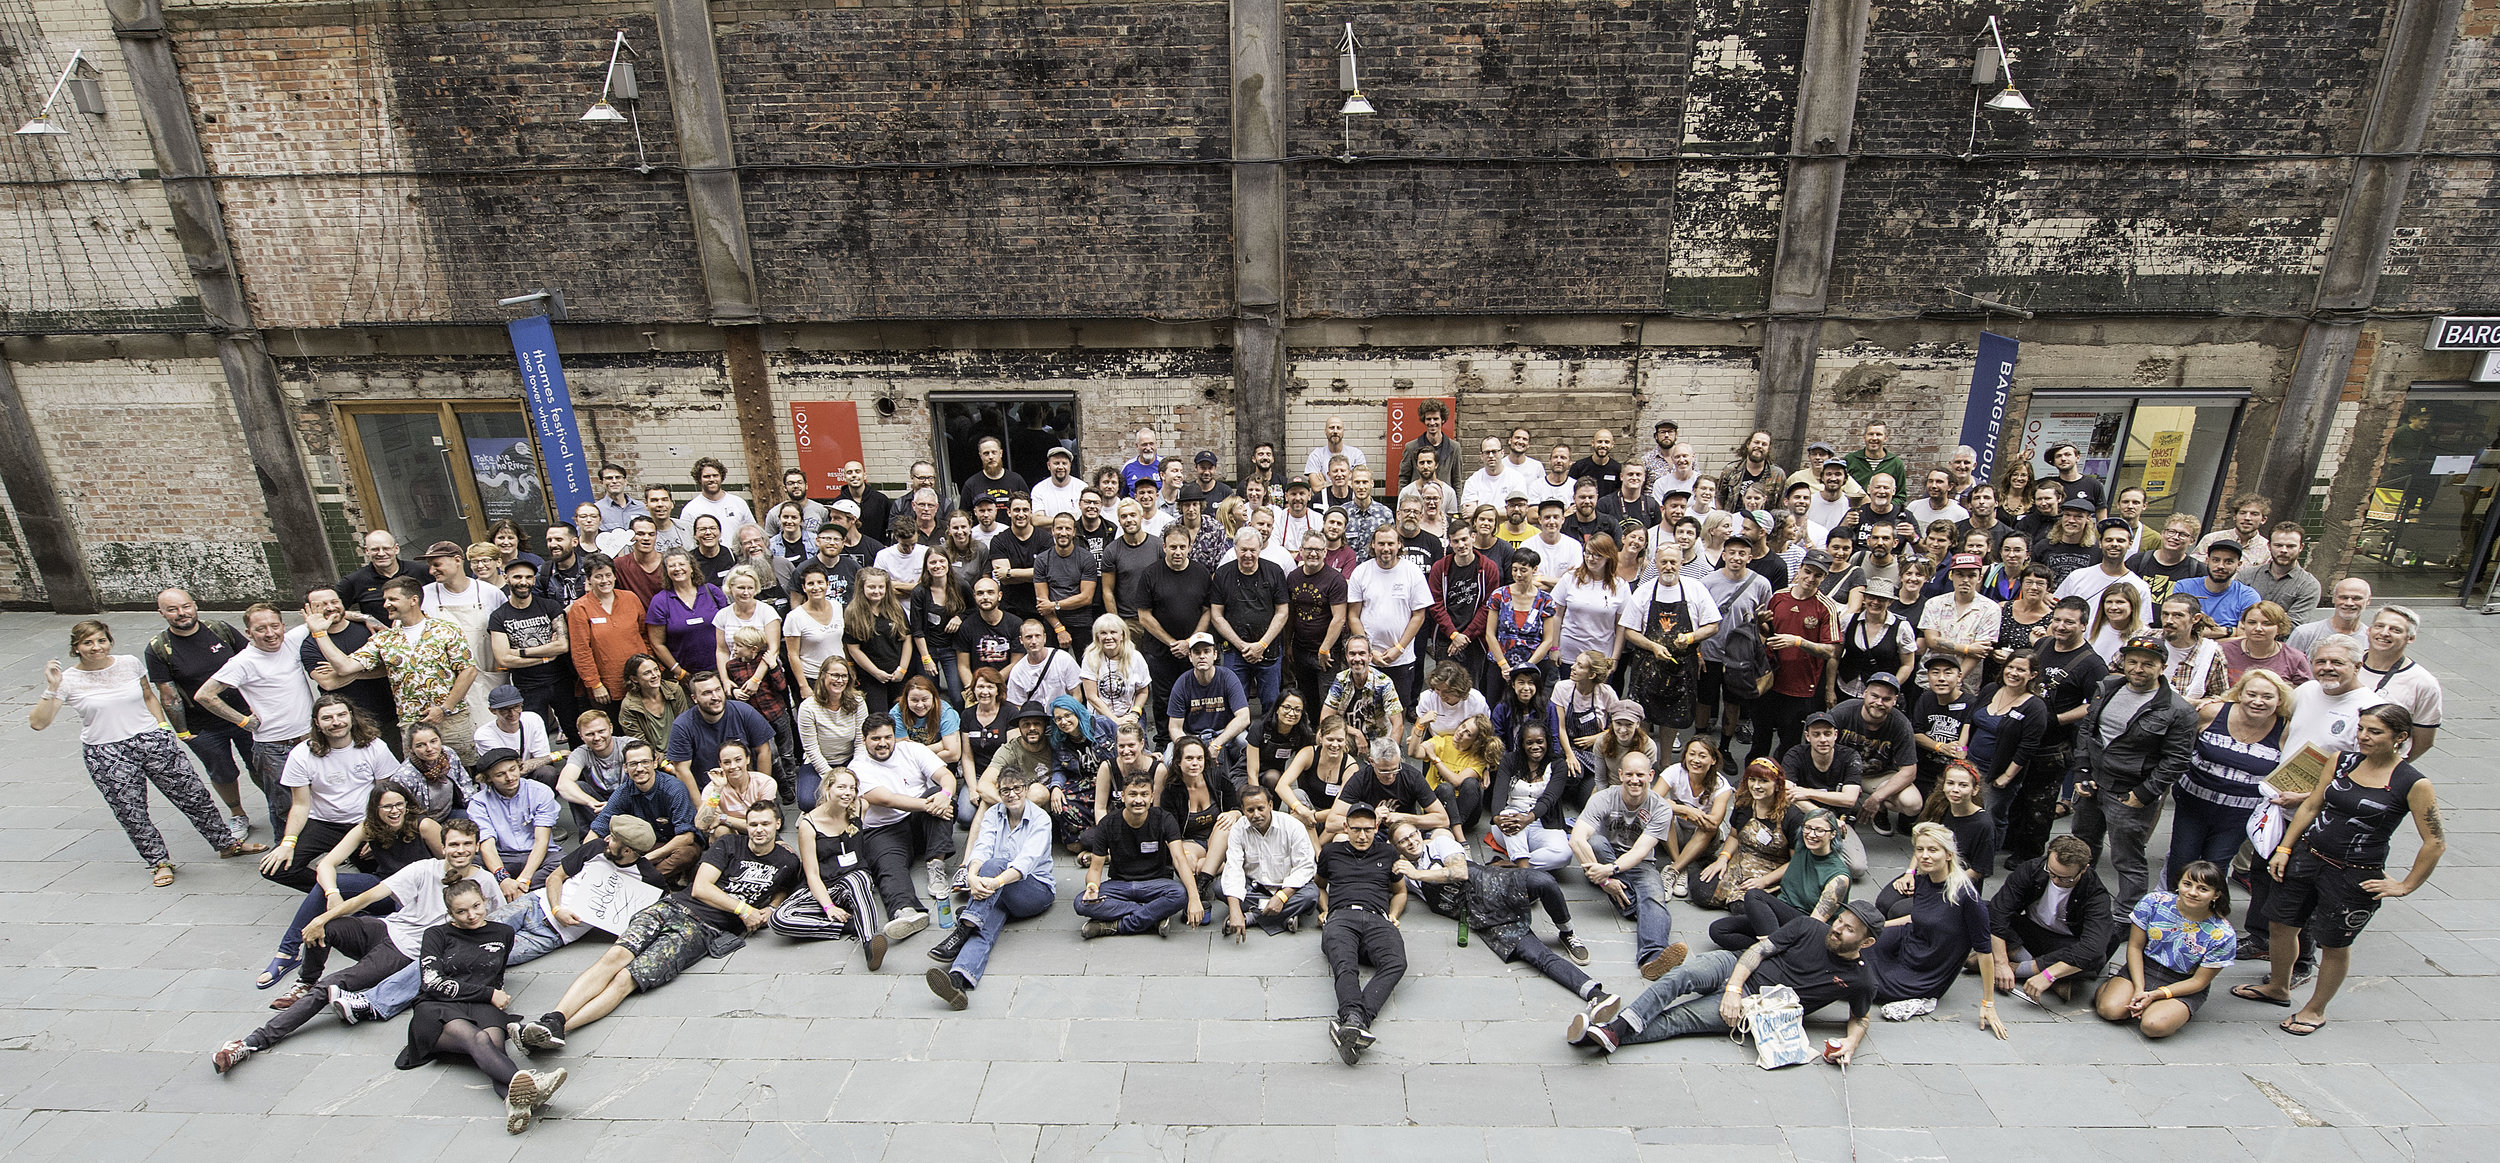 Group shot of the attendees from London Letterheads 2018. Photo by Colin Allen